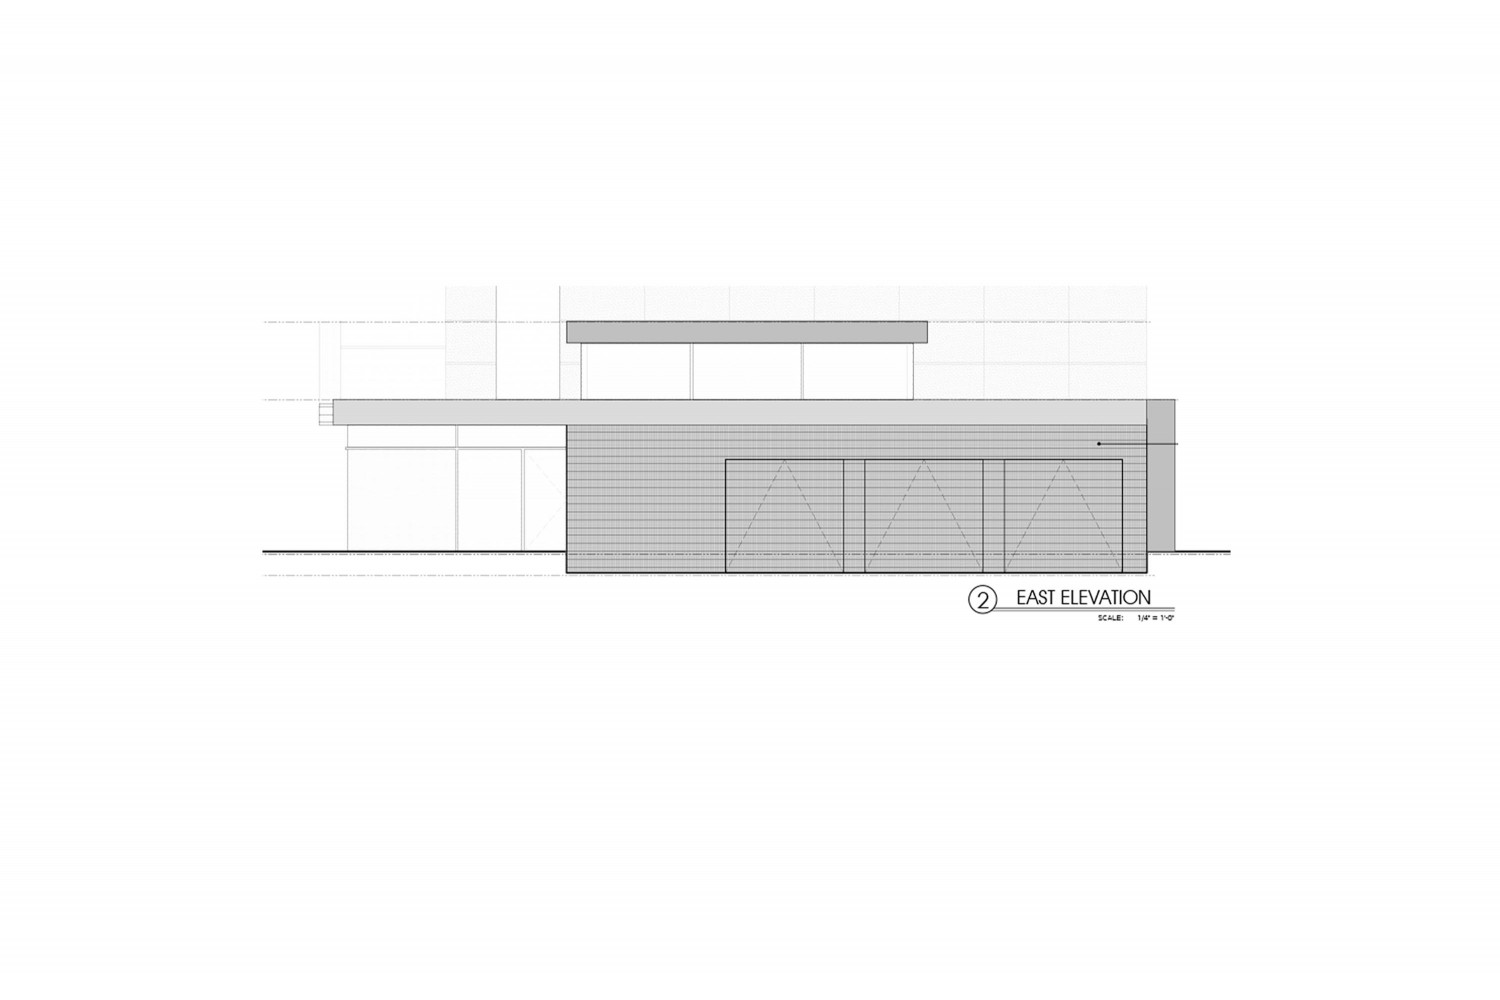 <span>proposed east elevation</span>